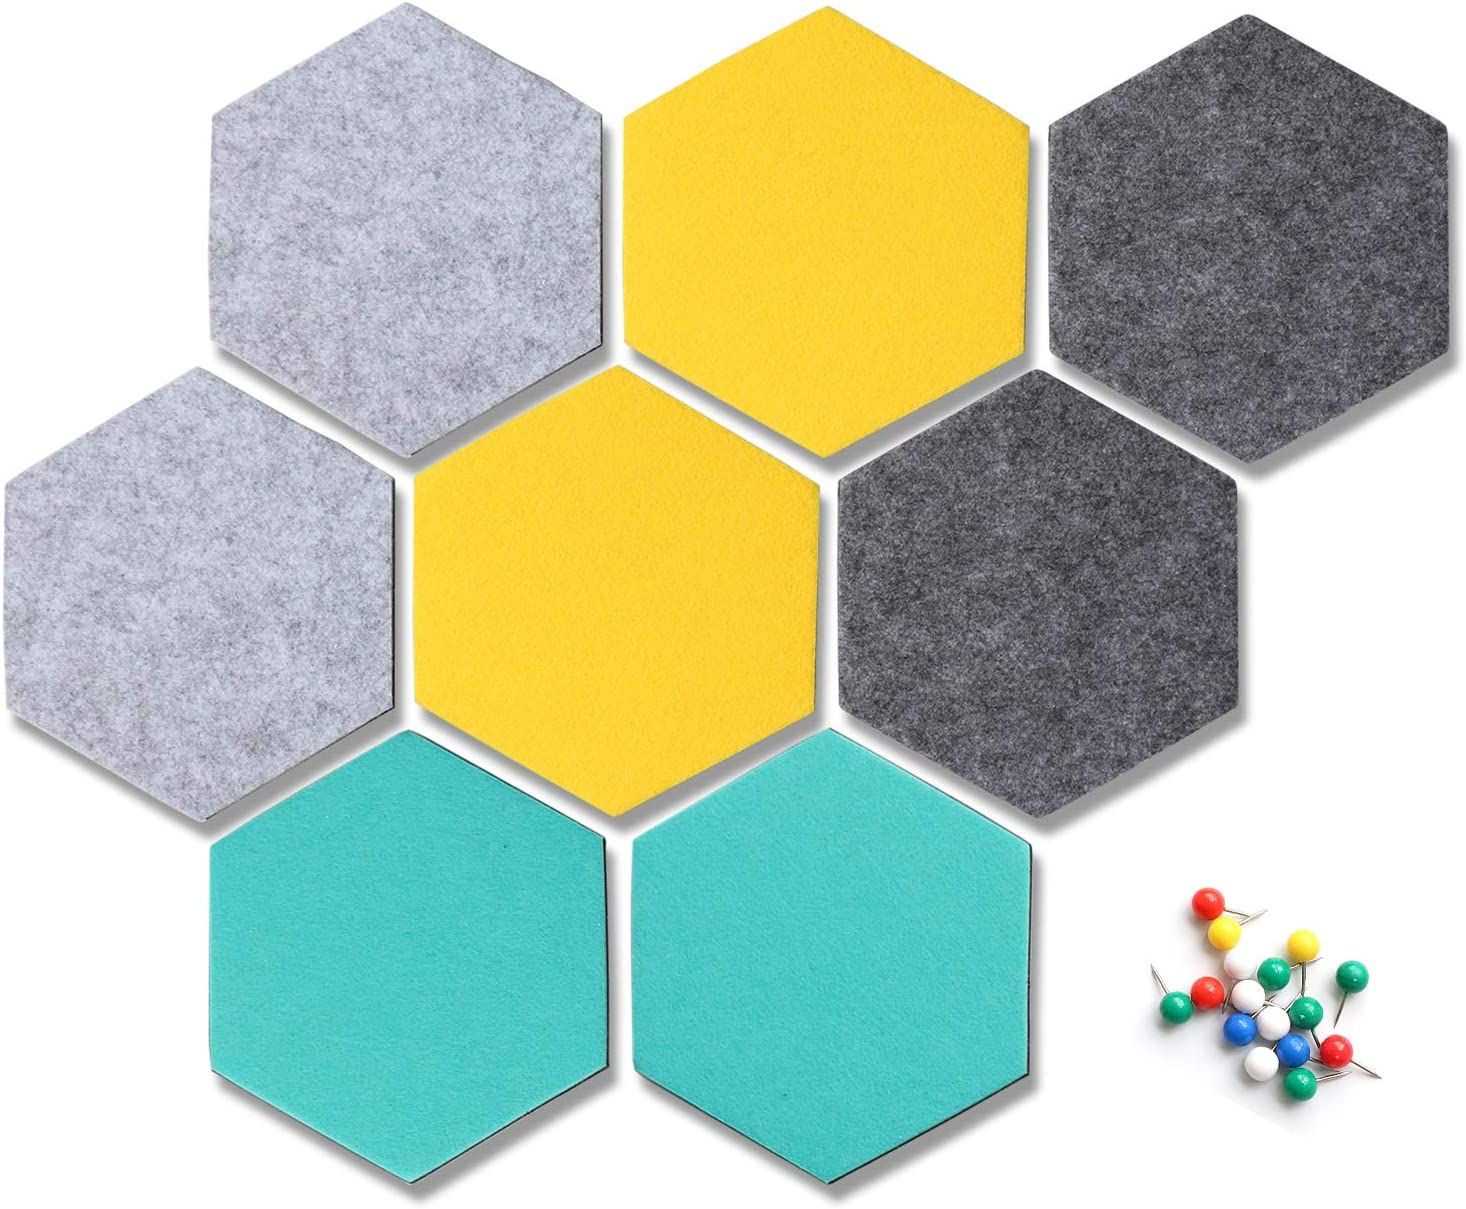 Yoillione Hexagon Felt Board Tiles Felt Memo Board, Bulletin Board Self Adhesive Notice Board Pins for Photos Memos Display, Note Board for Office Bedroom Home Wall Decor with Push Pins